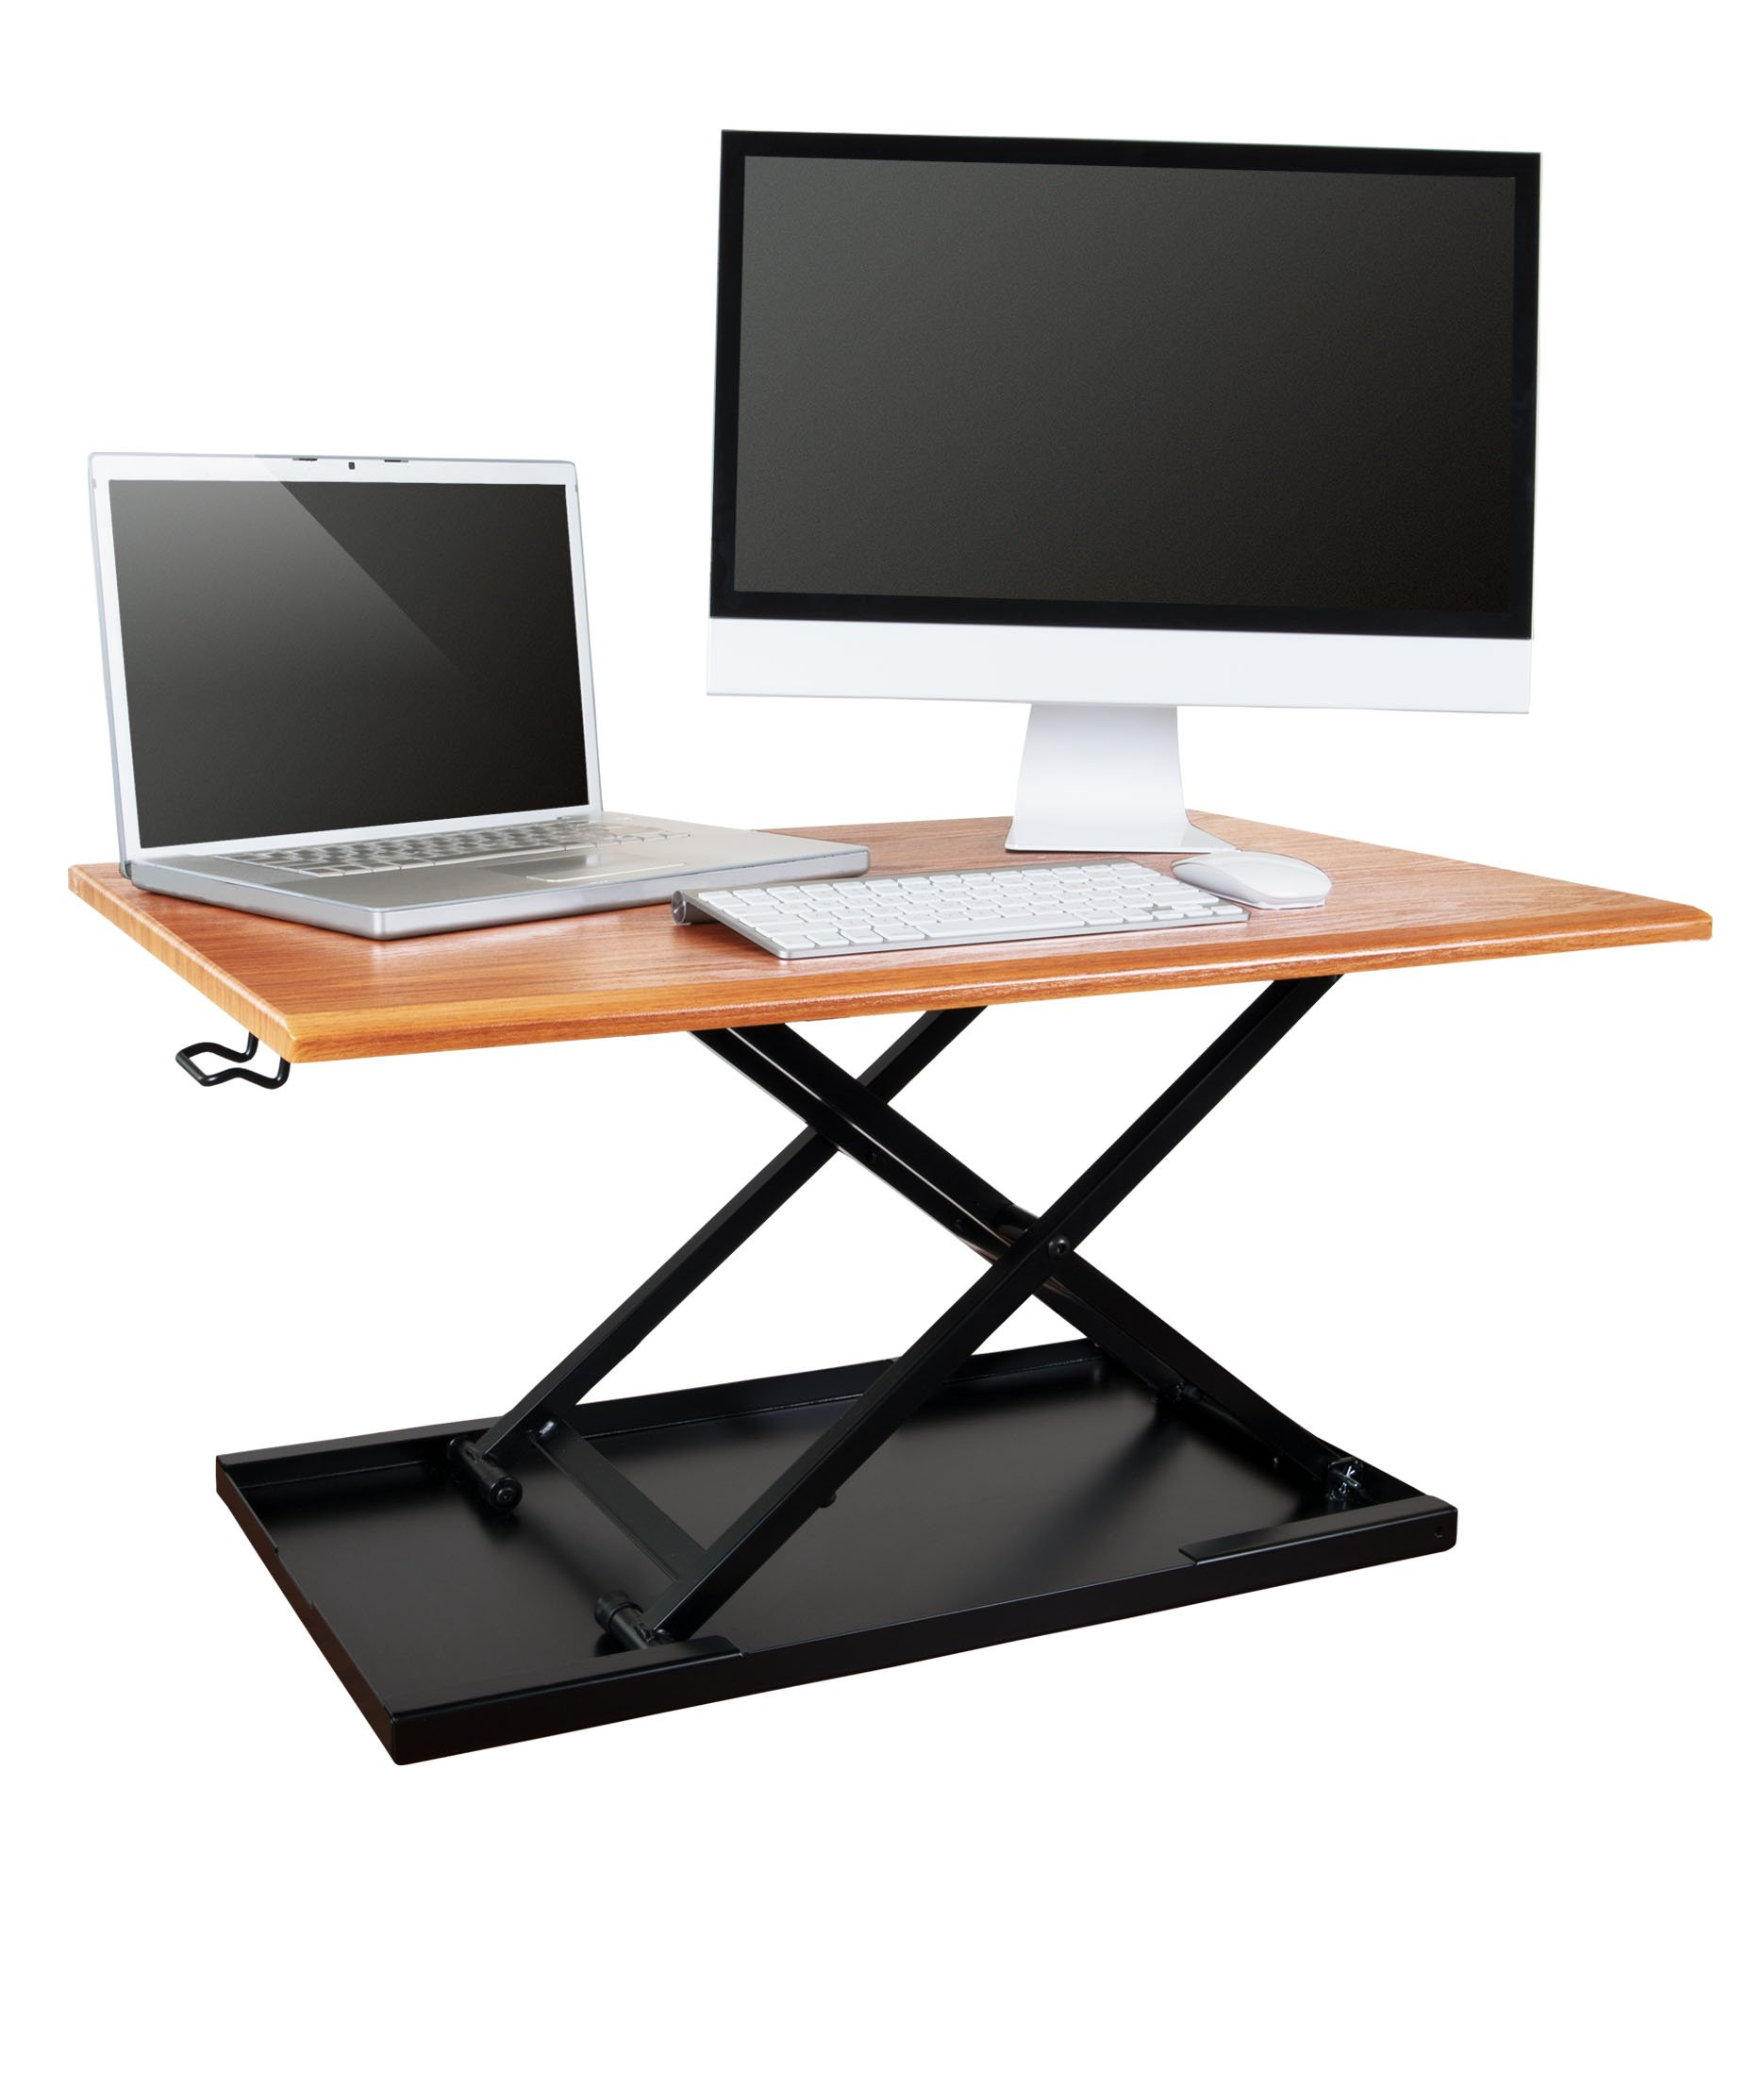 AirRise – Standing Desk Converter | Adjustable Height Pneumatic Stand Up Desk – Sit to Stand with Your Current Desk in Seconds (32'' Wide, Teak Wood Finish) by Stand Up Desk Store